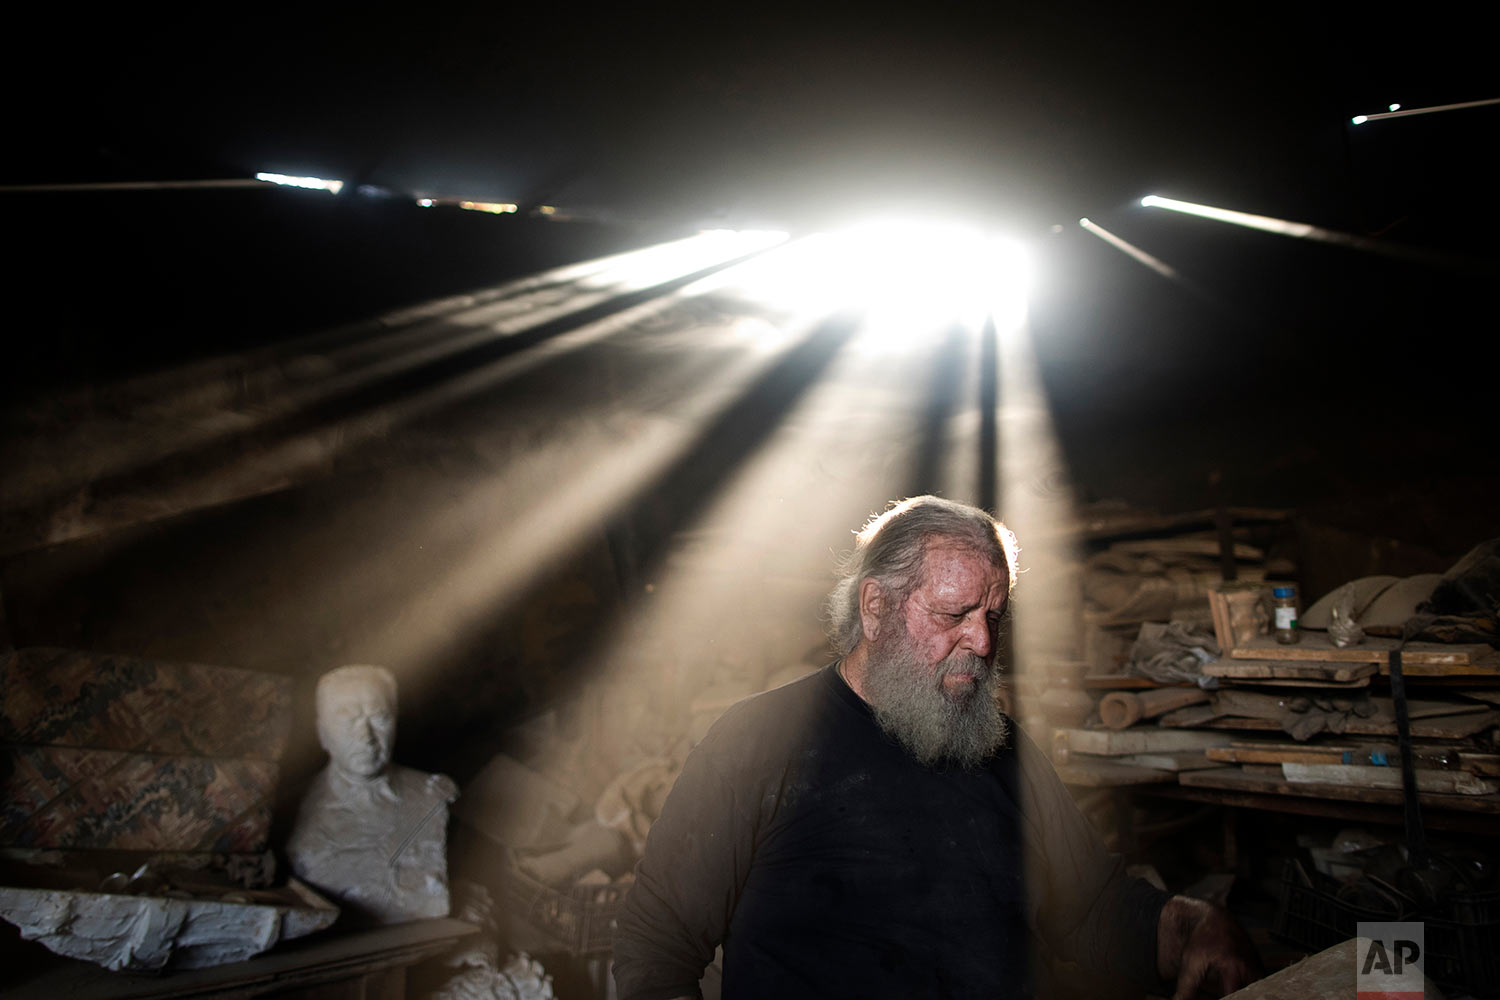 In this Friday, Nov. 20, 2017 photo, rays of sunlight shine on sculptor and ceramicist Haralambos Goumas as he works in his workshop, in the Egaleo suburb of Athens. (AP Photo/Petros Giannakouris)